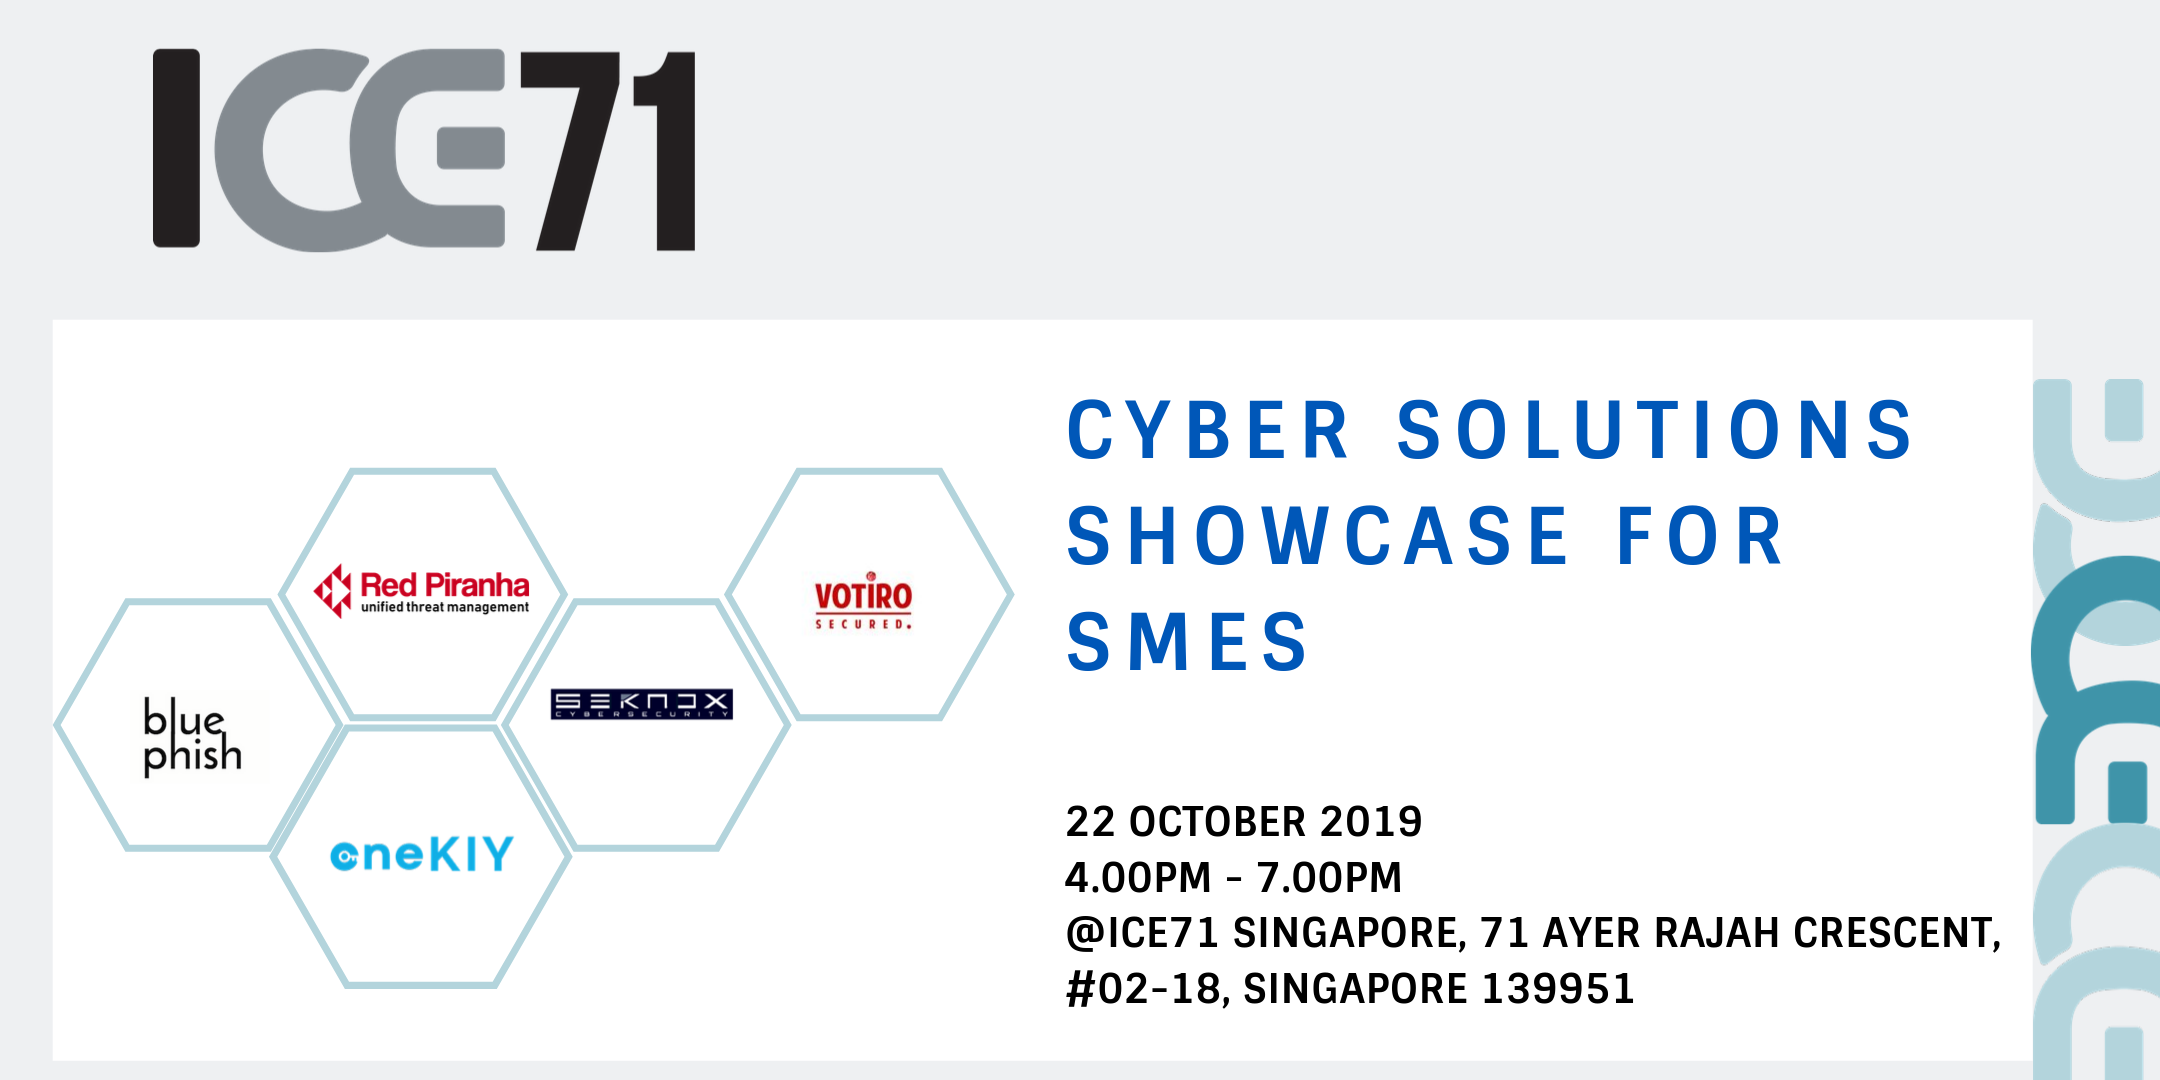 Cyber Solutions Showcase for SMEs